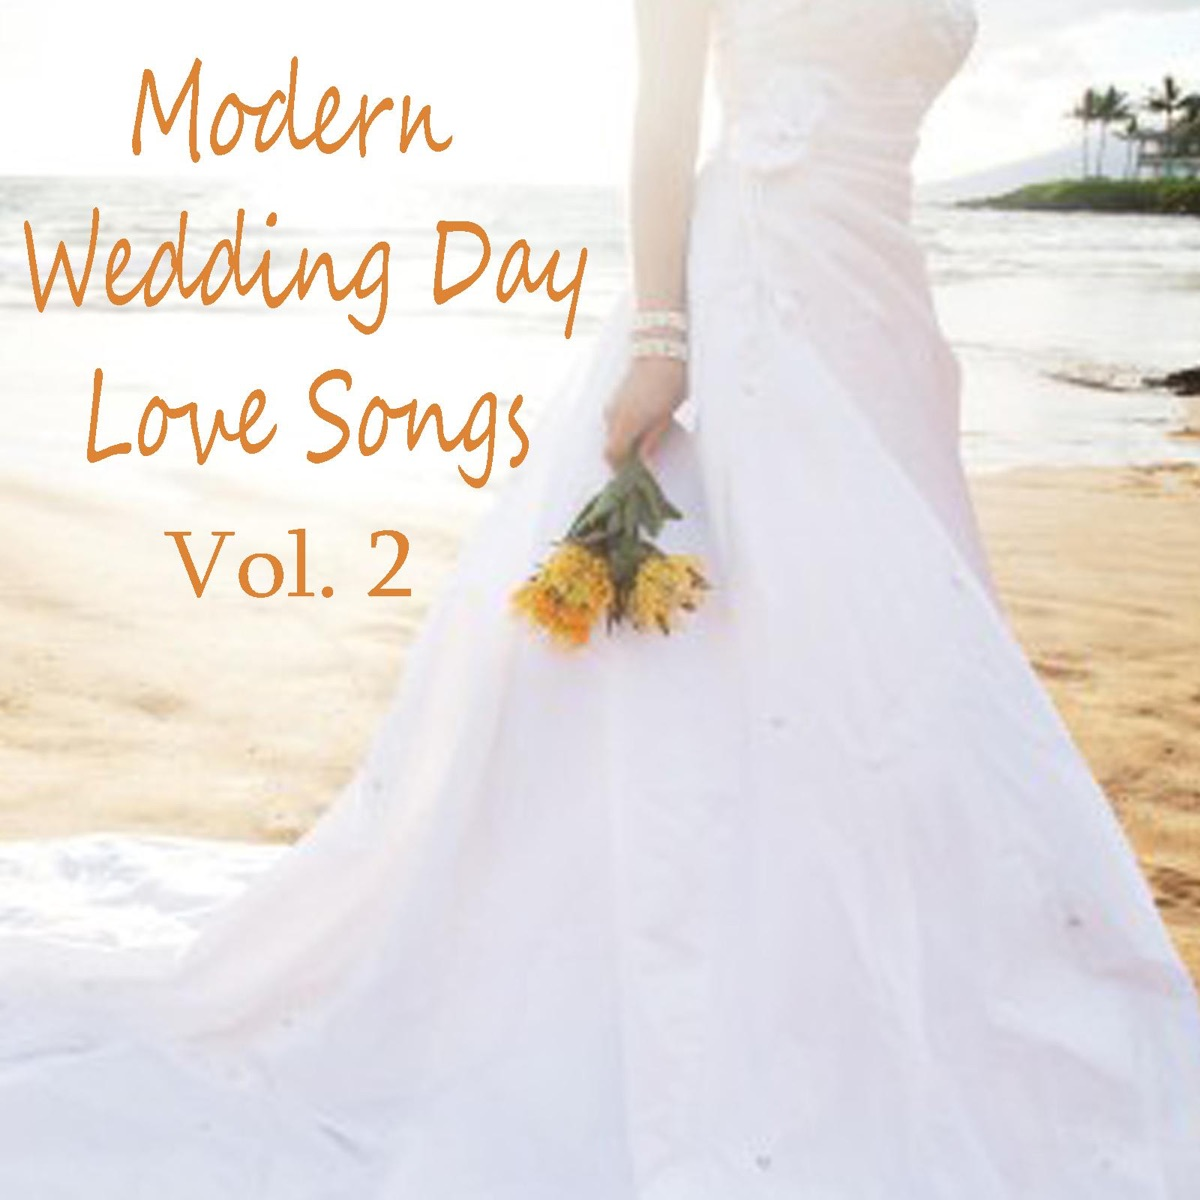 Modern Wedding Day Love Songs, Vol  2 Album Cover by The O